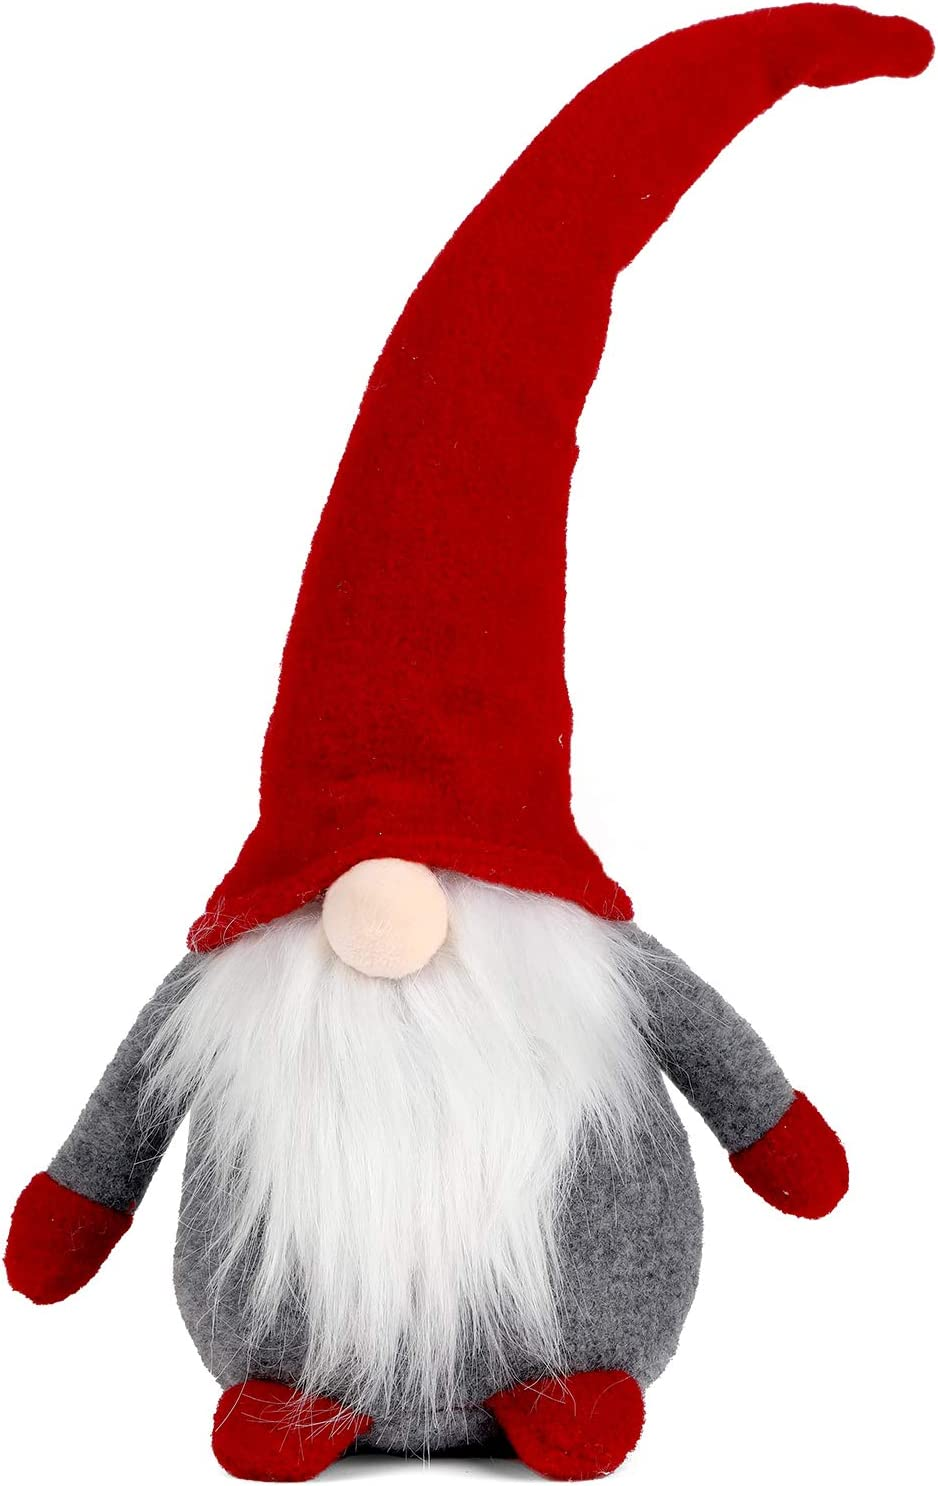 Handmade Swedish Gnome Plush Christmas Santa Home Decoration Indoor Outdoor Gnomes Naughty Plush Elf Toy Winter Table Ornament Holiday Presents (16Inch Red) Figurines for The Christmas Tree Decor